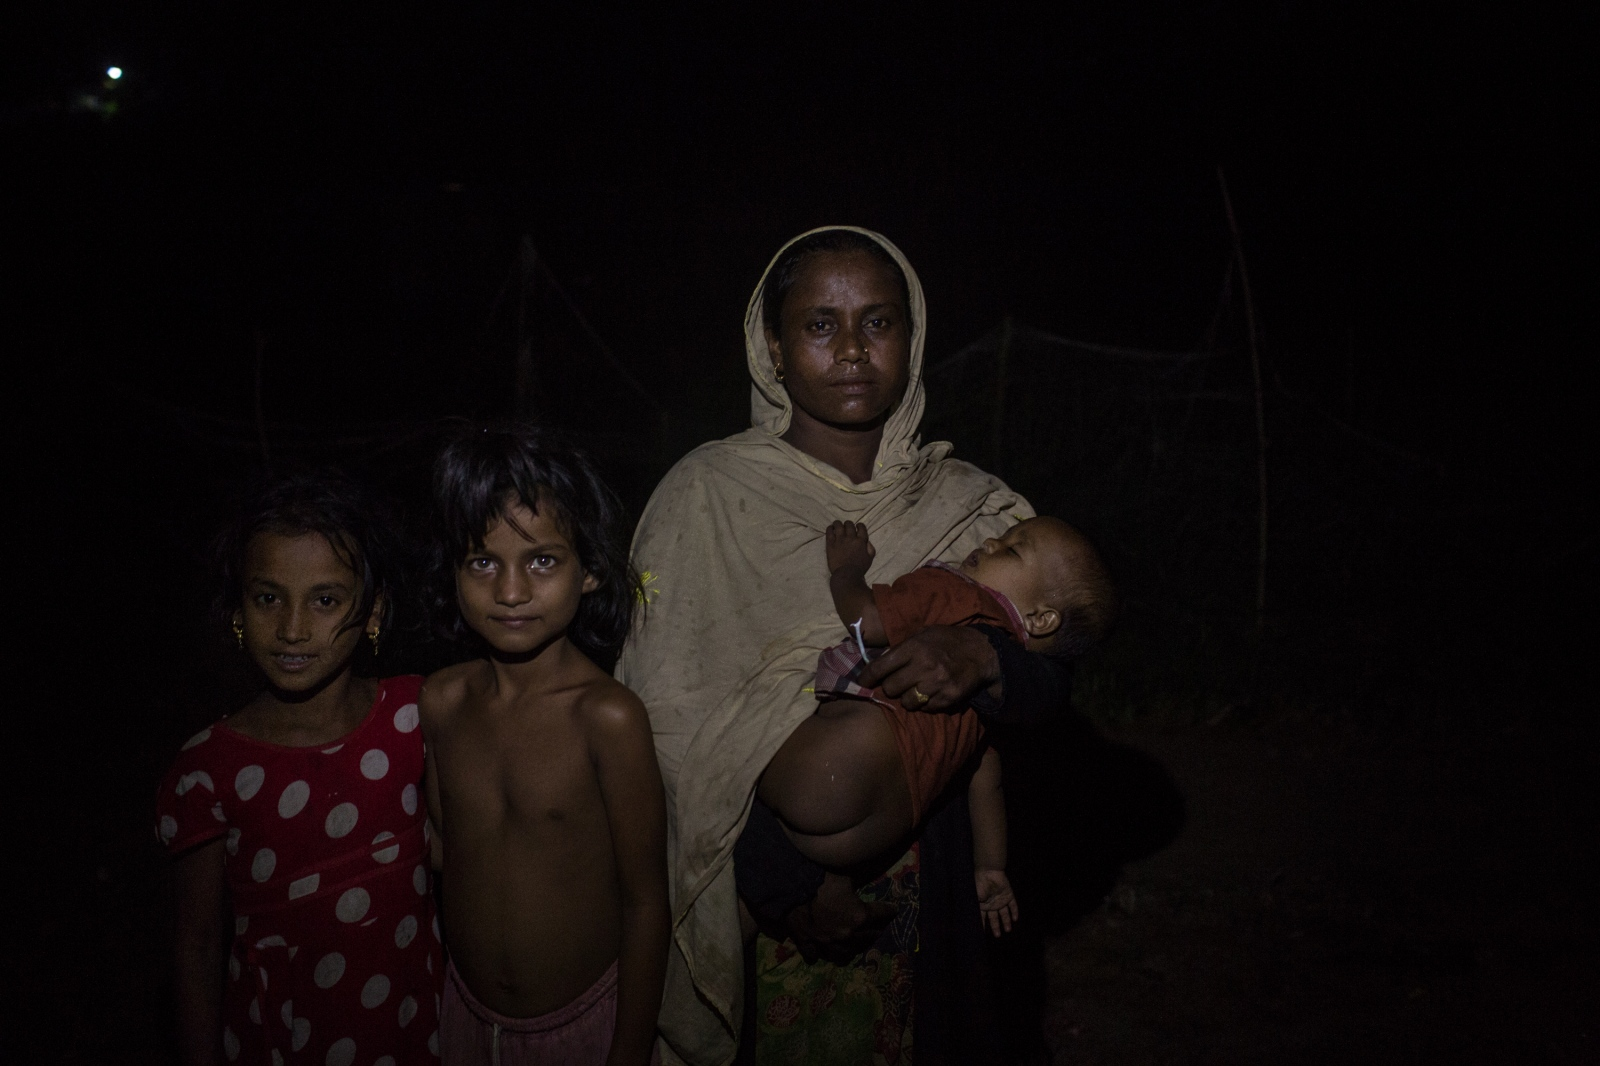 Romeeja Begum, 30, waits with her three children by the side of the road for food and cash distributions near the Balukhali refugee camp in Bangladesh on Friday September 22, 2017. Romeeja's husband remains in Myanmar but she does not know of his fate.